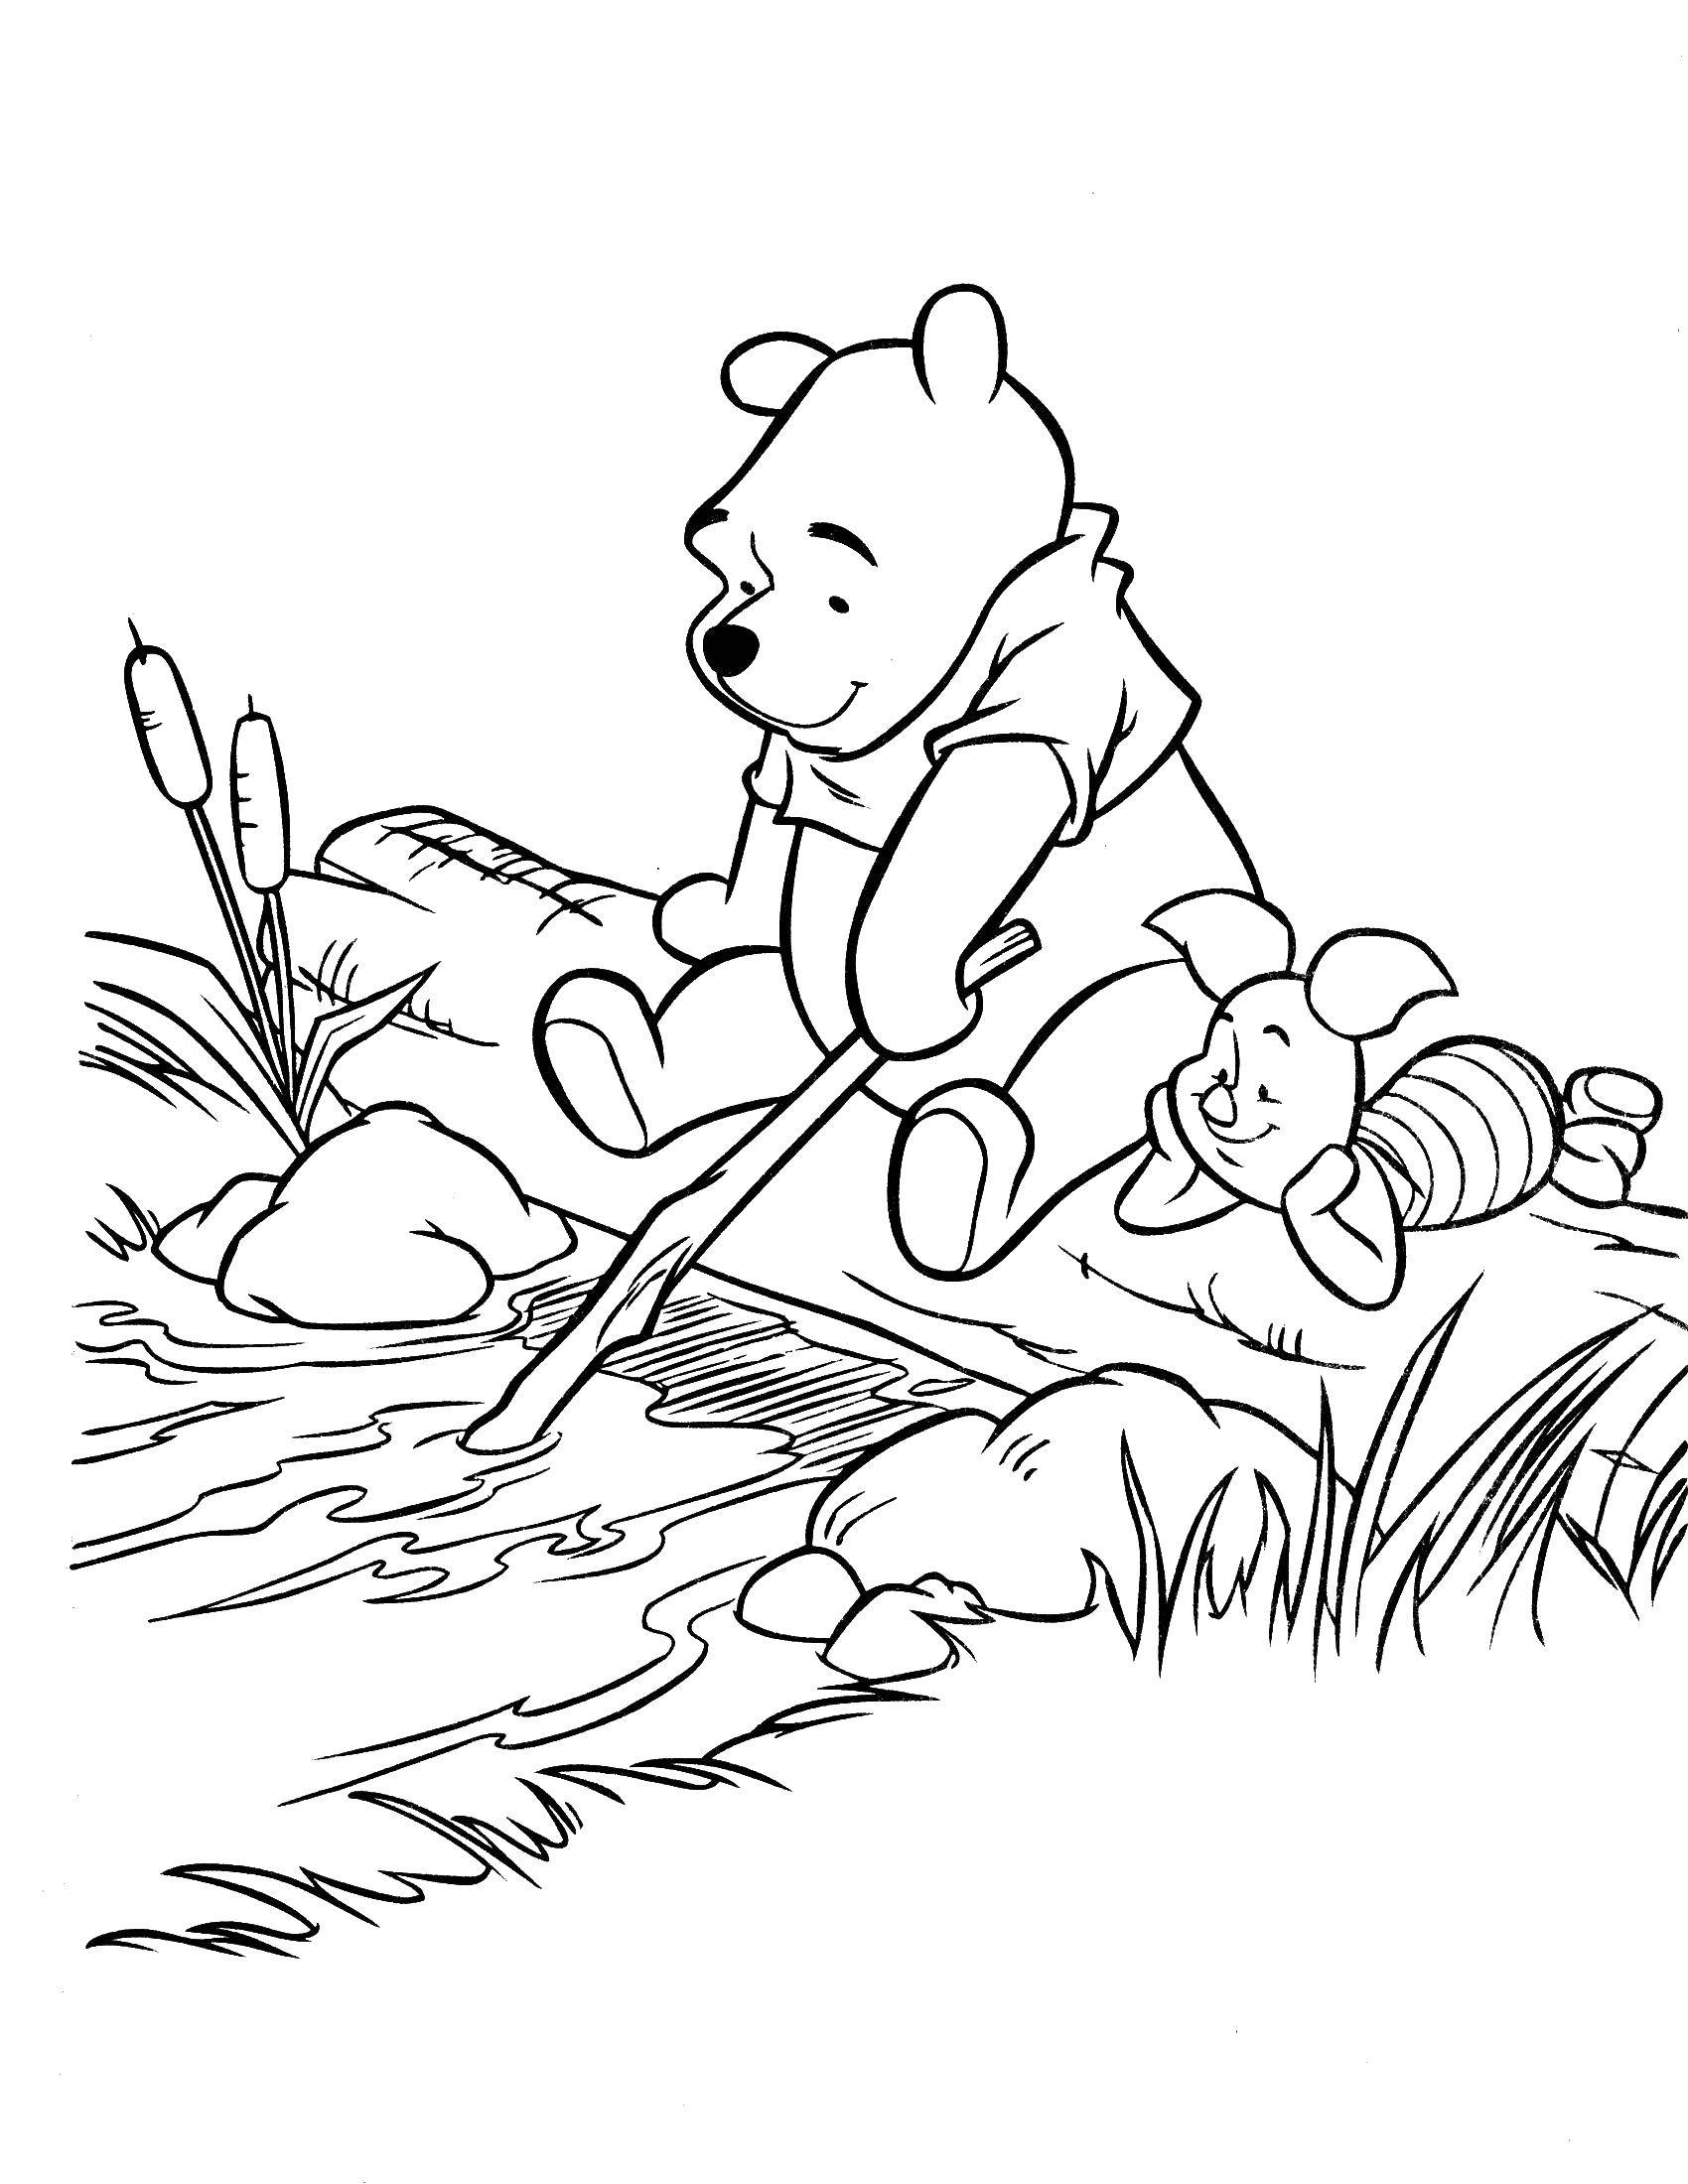 Coloring Winnie the Pooh and Piglet Download Disney honey, Winnie the Pooh, Piglet.  Print ,Disney cartoons,